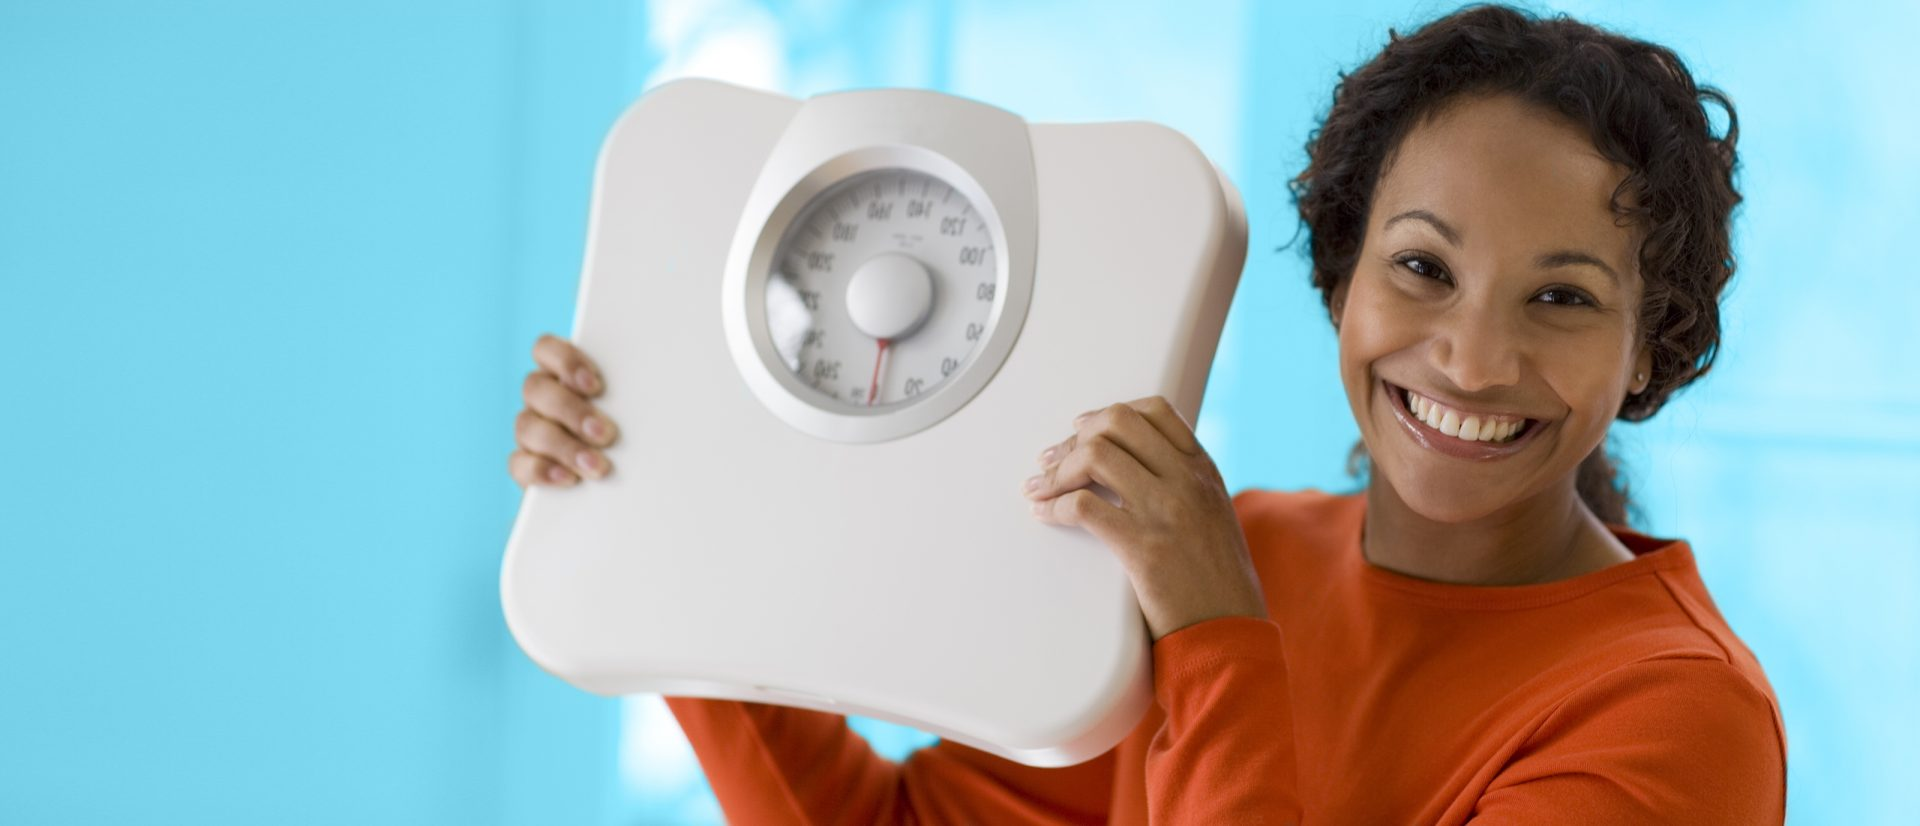 A woman holding a scale